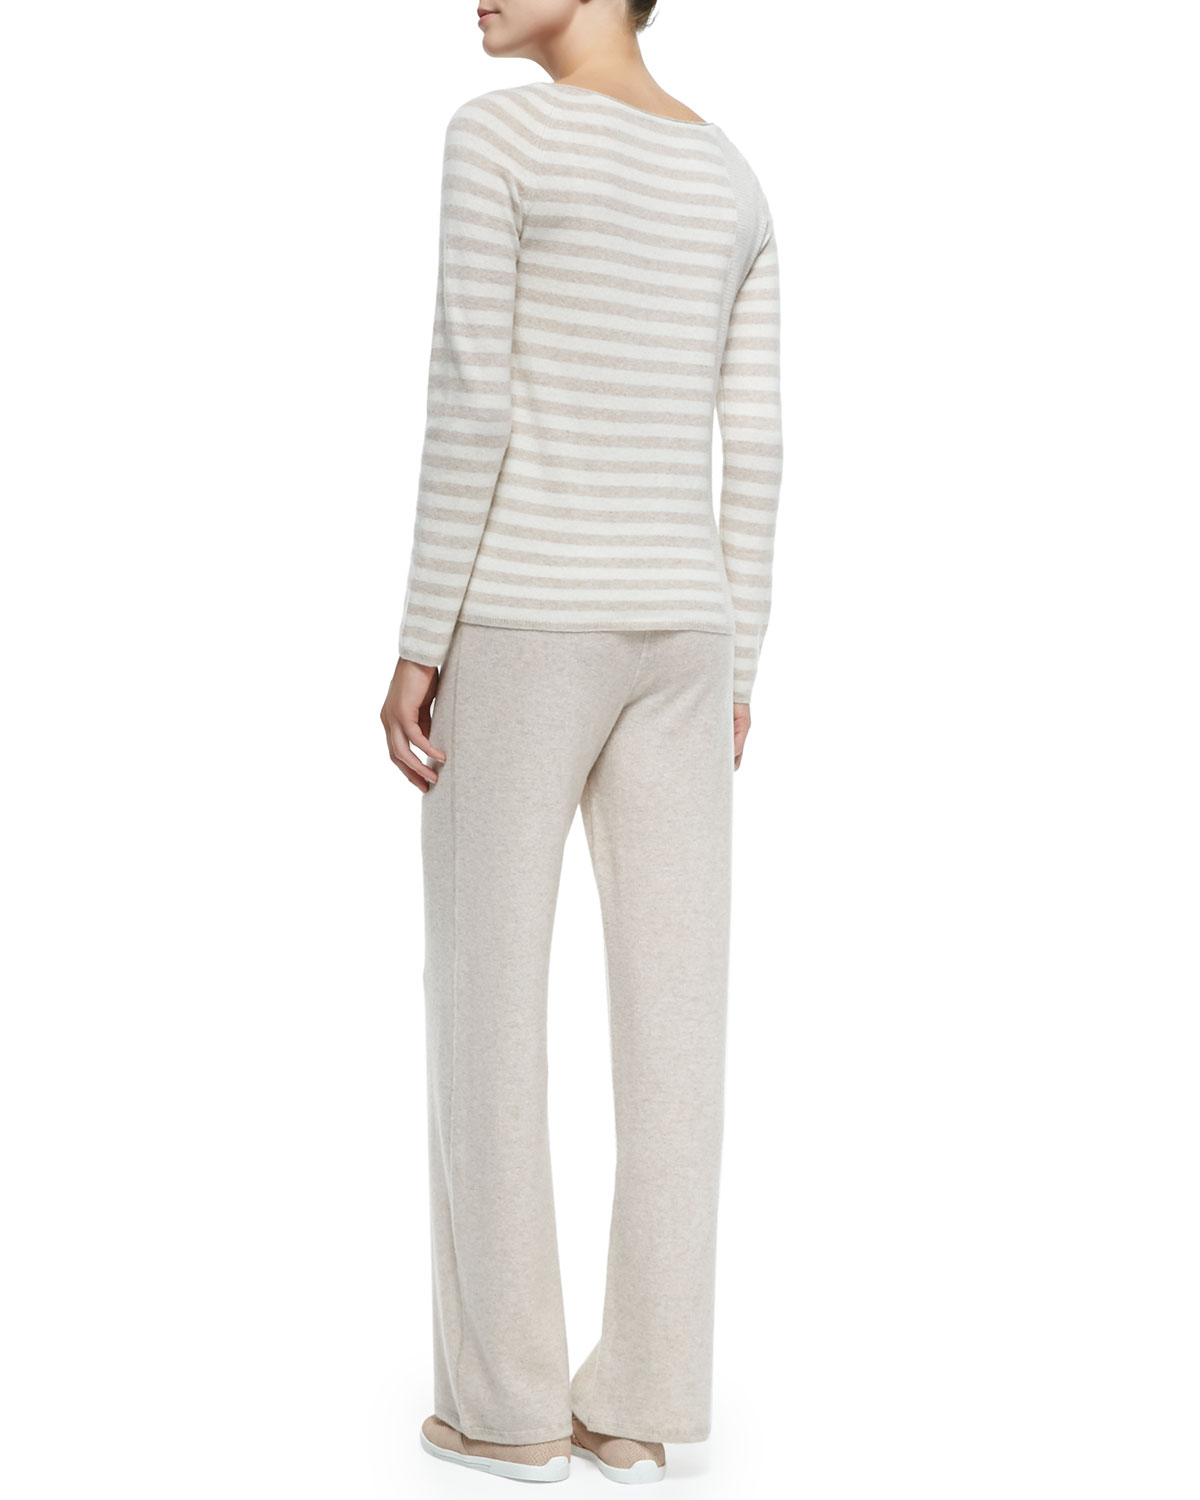 9828e75648 In Cashmere Two-Piece Cashmere Top & Pants Set in Natural - Lyst